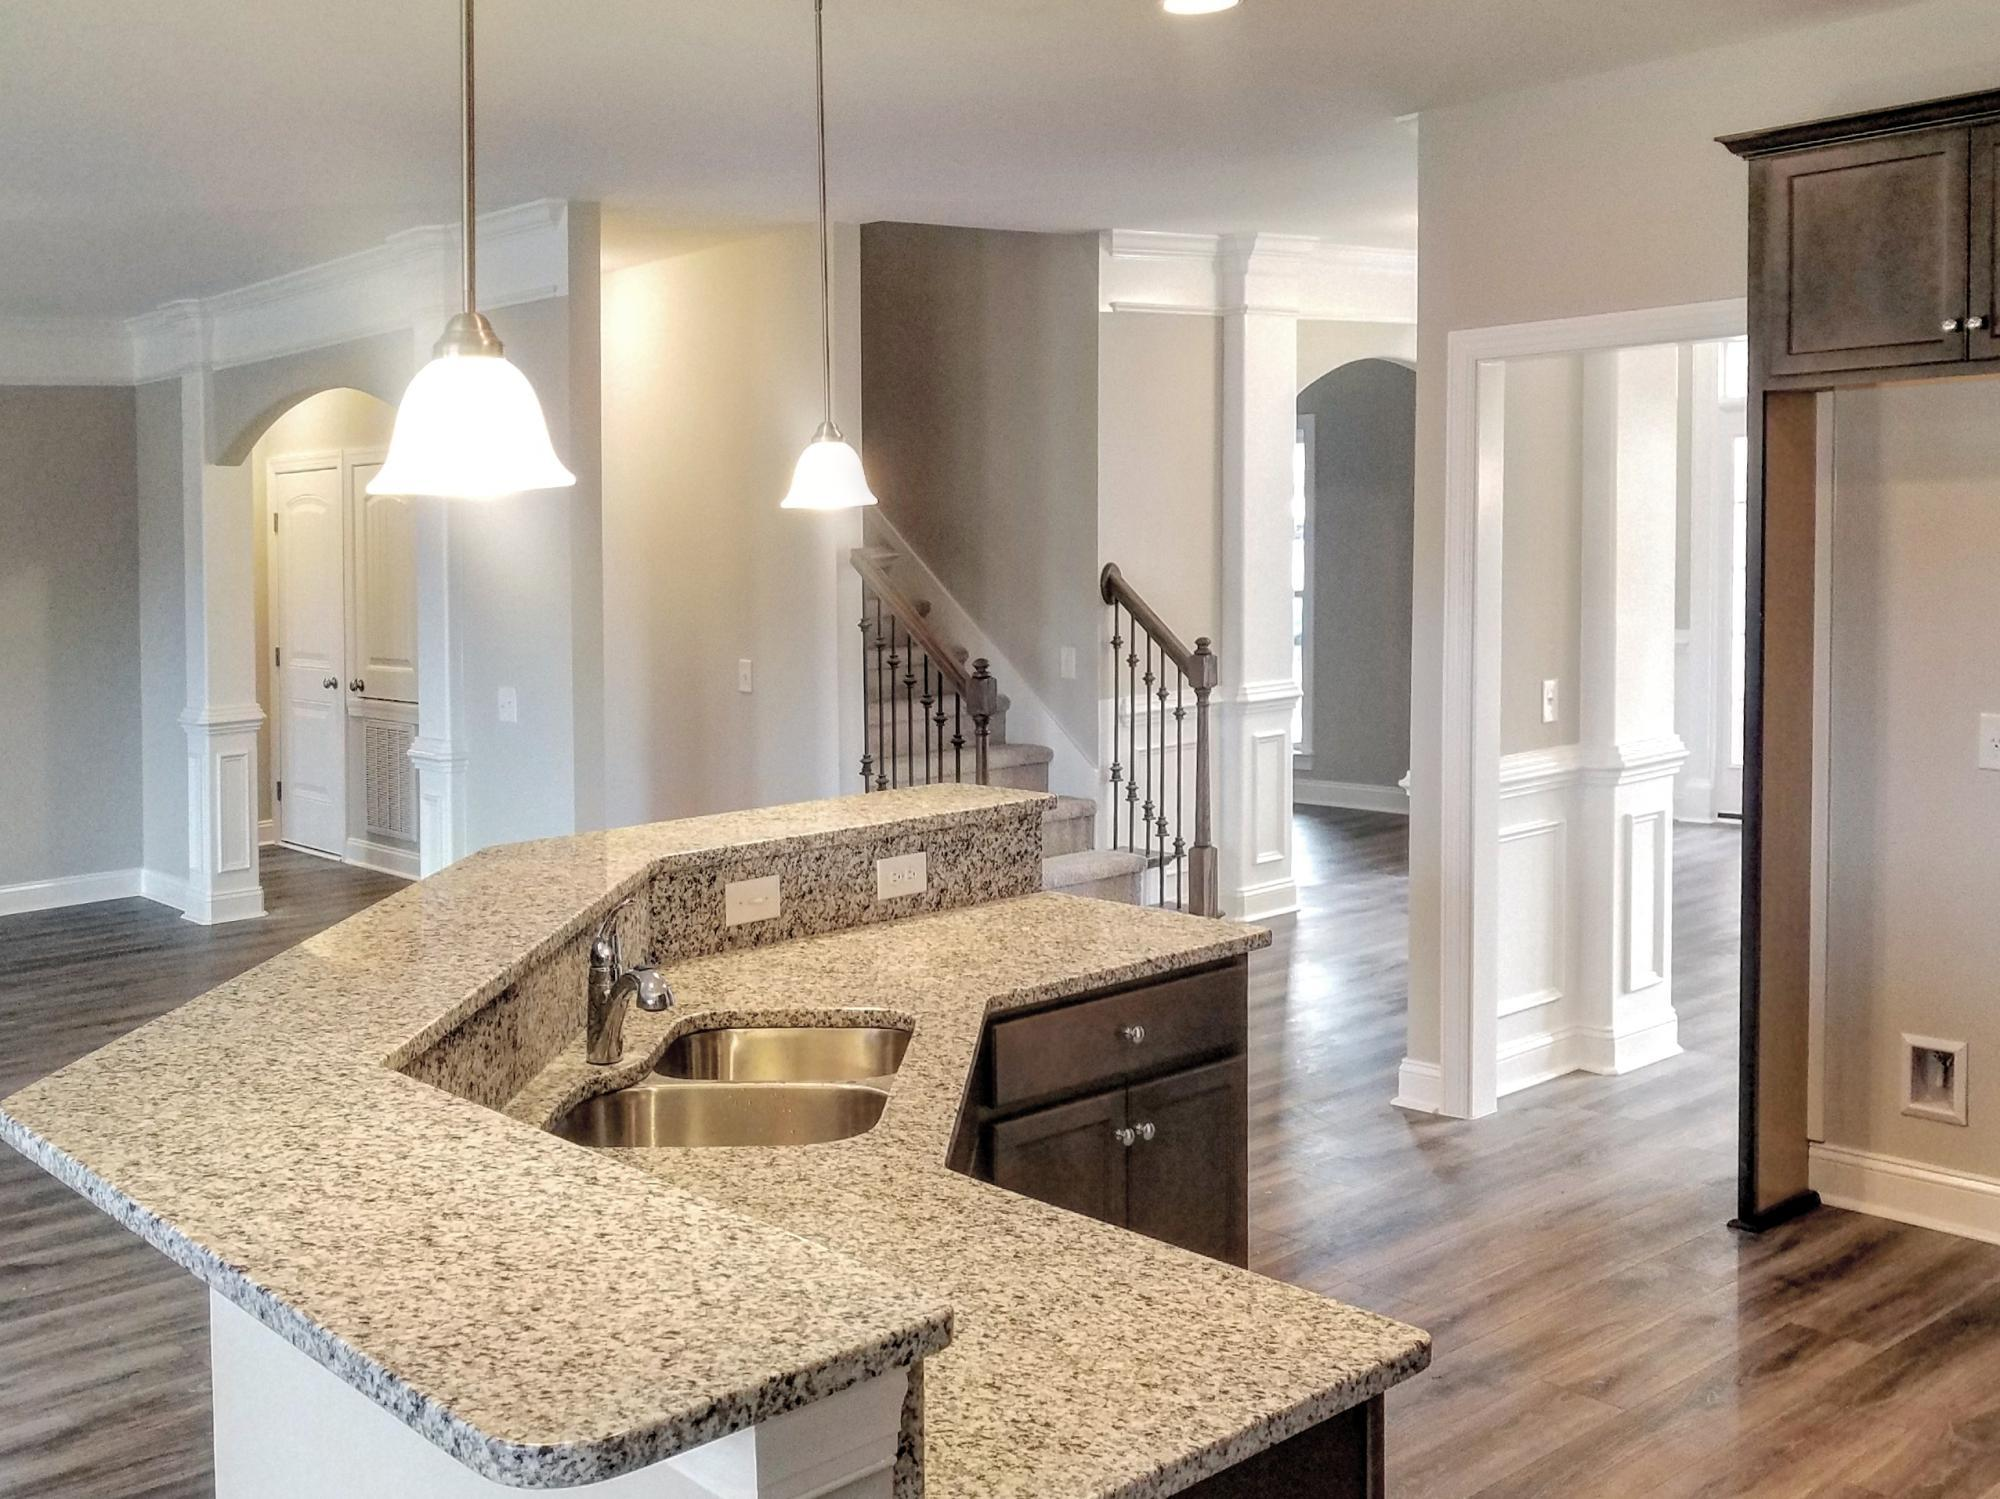 Kitchen featured in the Montgomery XL By Konter Quality Homes in Savannah, GA